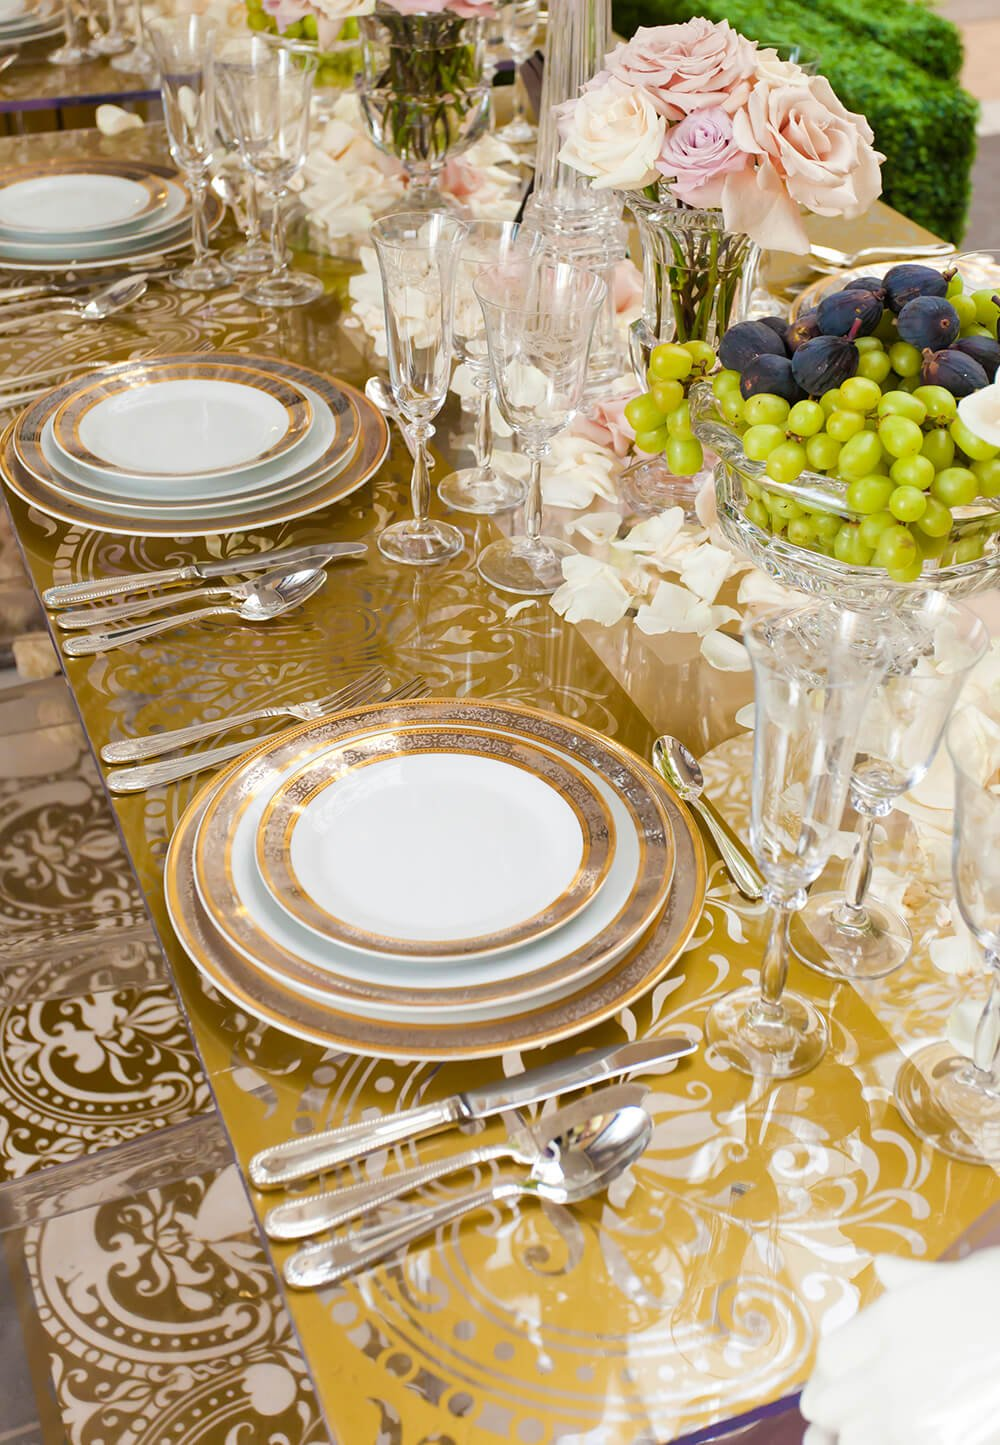 The exquisite details on the plates, combined with the pattern of the table makes for an unforgettable dining experience.